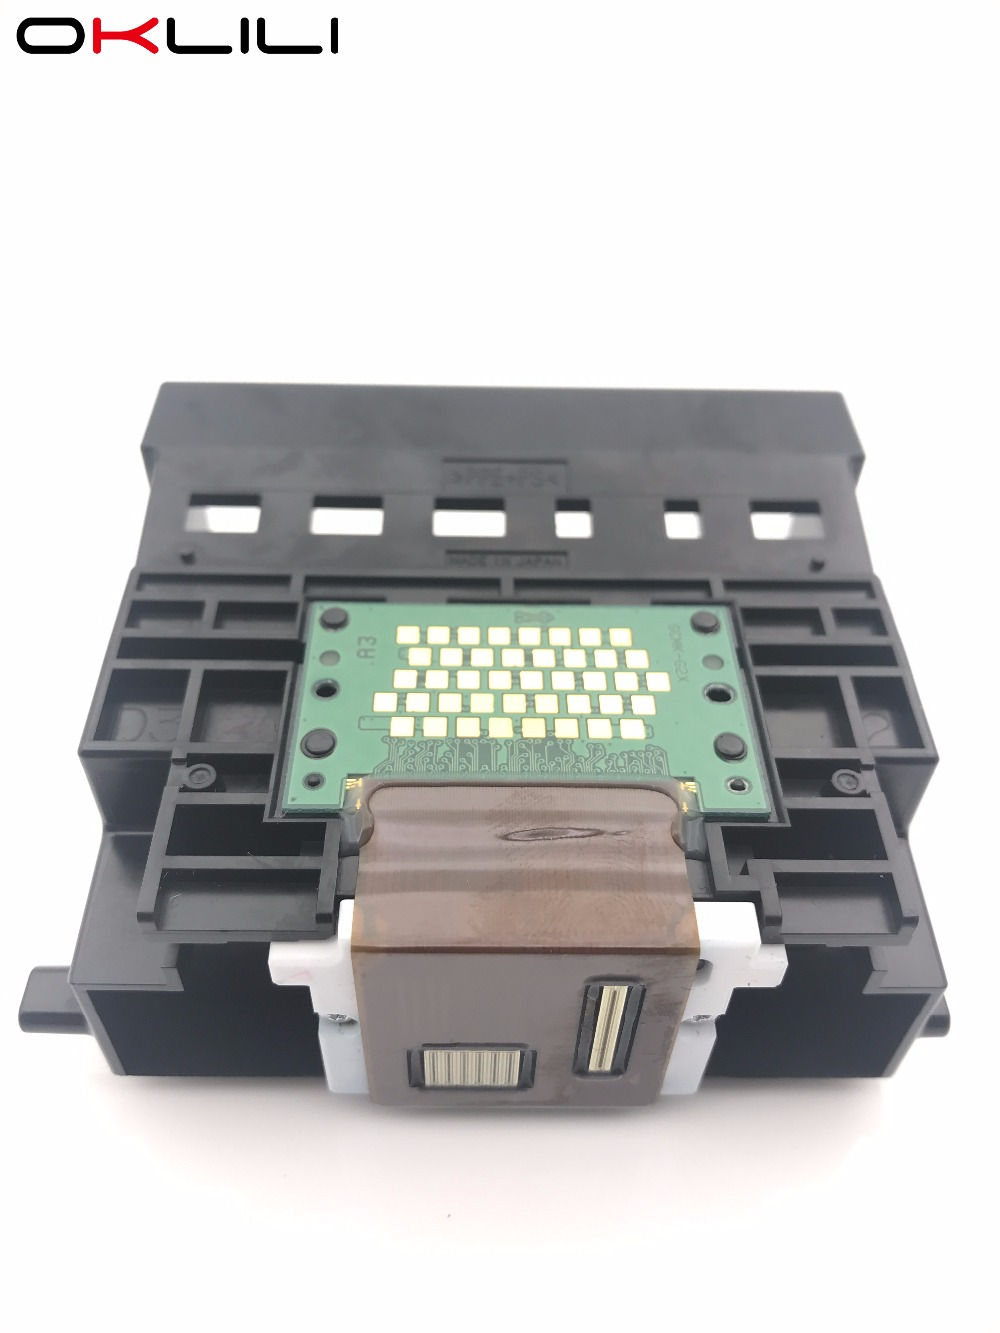 1PCX ORIGINAL QY6-0057 QY6-0057-000 Printhead Print Head Printer Head for Canon PIXMA iP5000 iP5000R genuine brand new qy6 0083 printhead print head for canon mg6310 mg6320 mg6350 mg6380 mg7120 mg7140 mg7150 mg7180 ip8720 ip8750